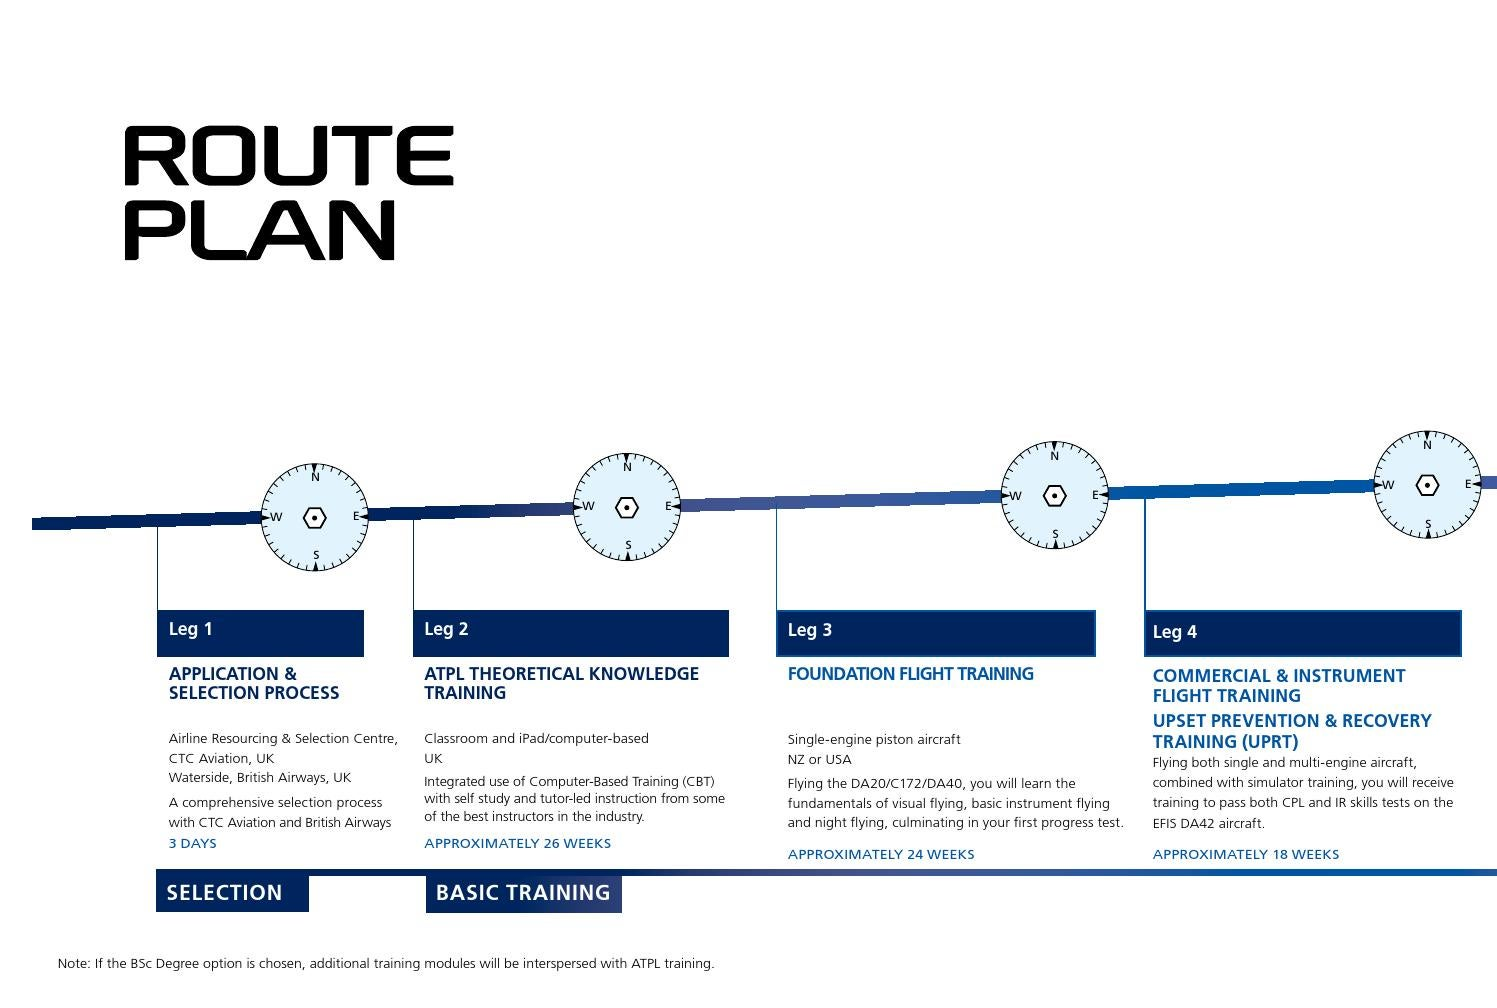 Route Guide 04 CTC WINGS Integrated ATPL in partnership with British